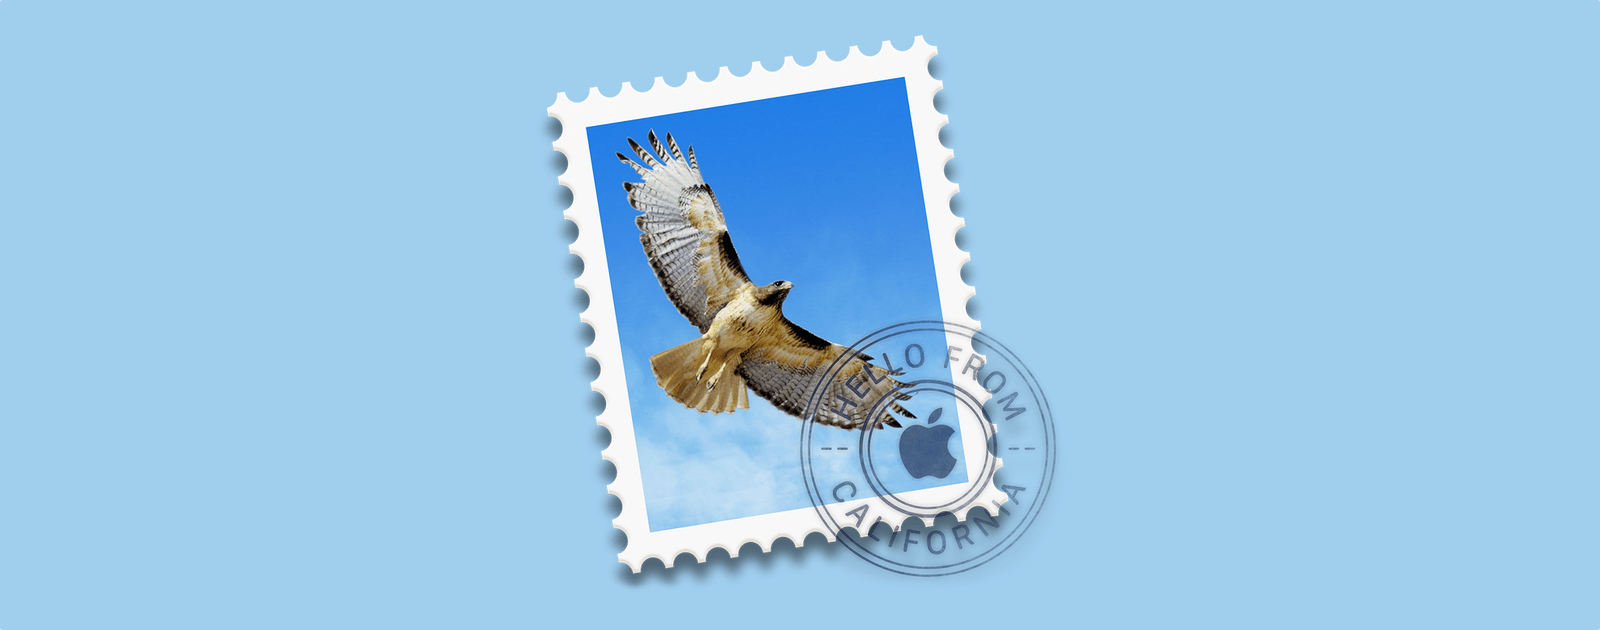 How to Move Your Apple Mail Files From Old to New Mac